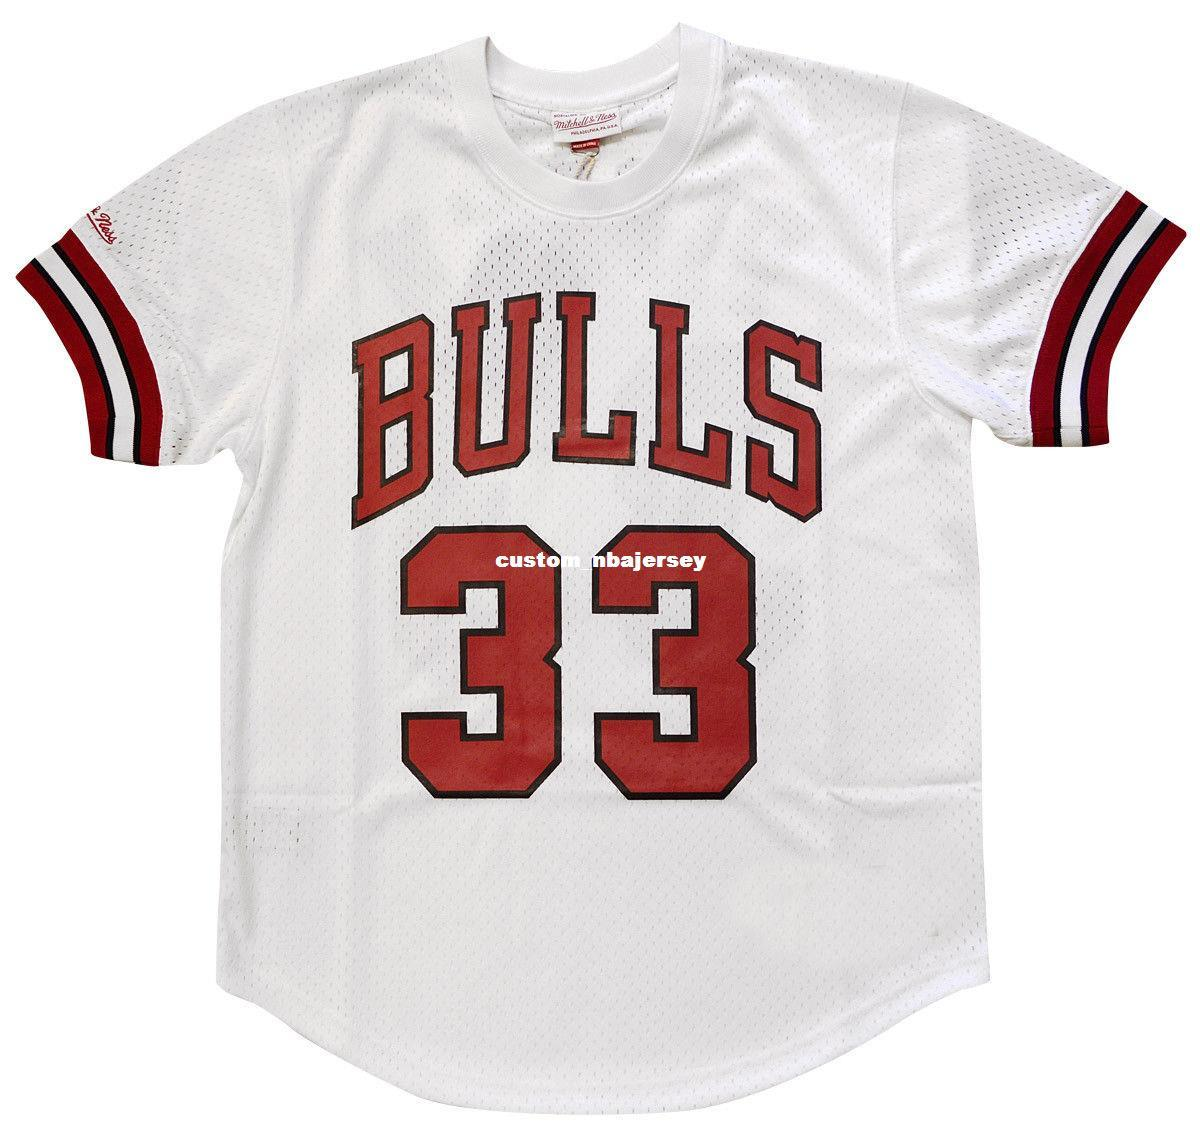 new arrival a18eb ec7d8 2019 Cheap Custom Scottie Pippen Mitchell & Ness Mens Mesh Jersey Shirt  Stitched Summer Tee Retro Basketball Jersey From Custom_nbajersey, $21.58 |  ...